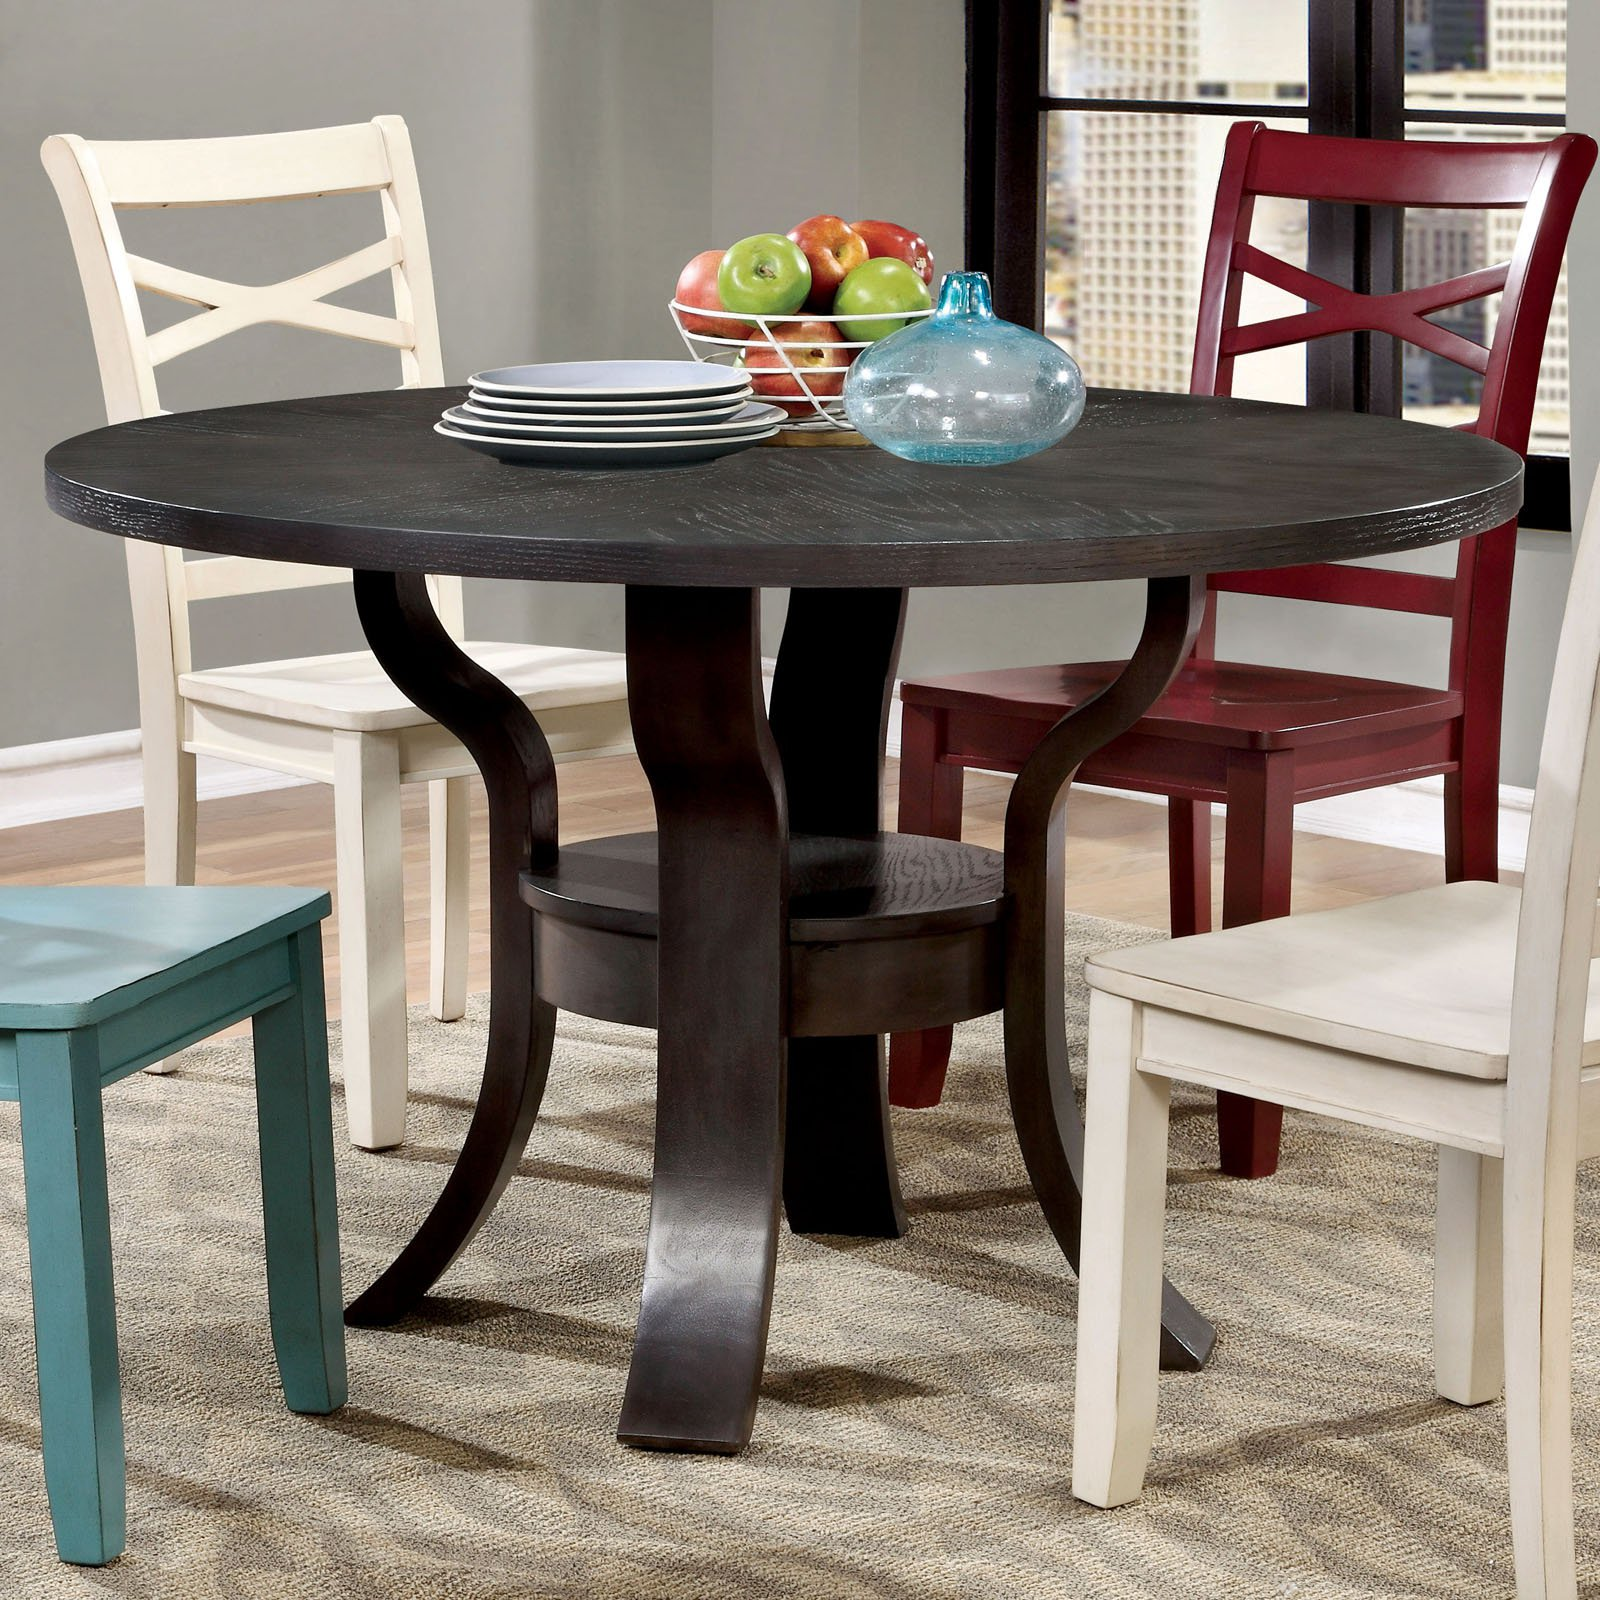 Furniture of America Bastion Sprawling Leg Dining Table